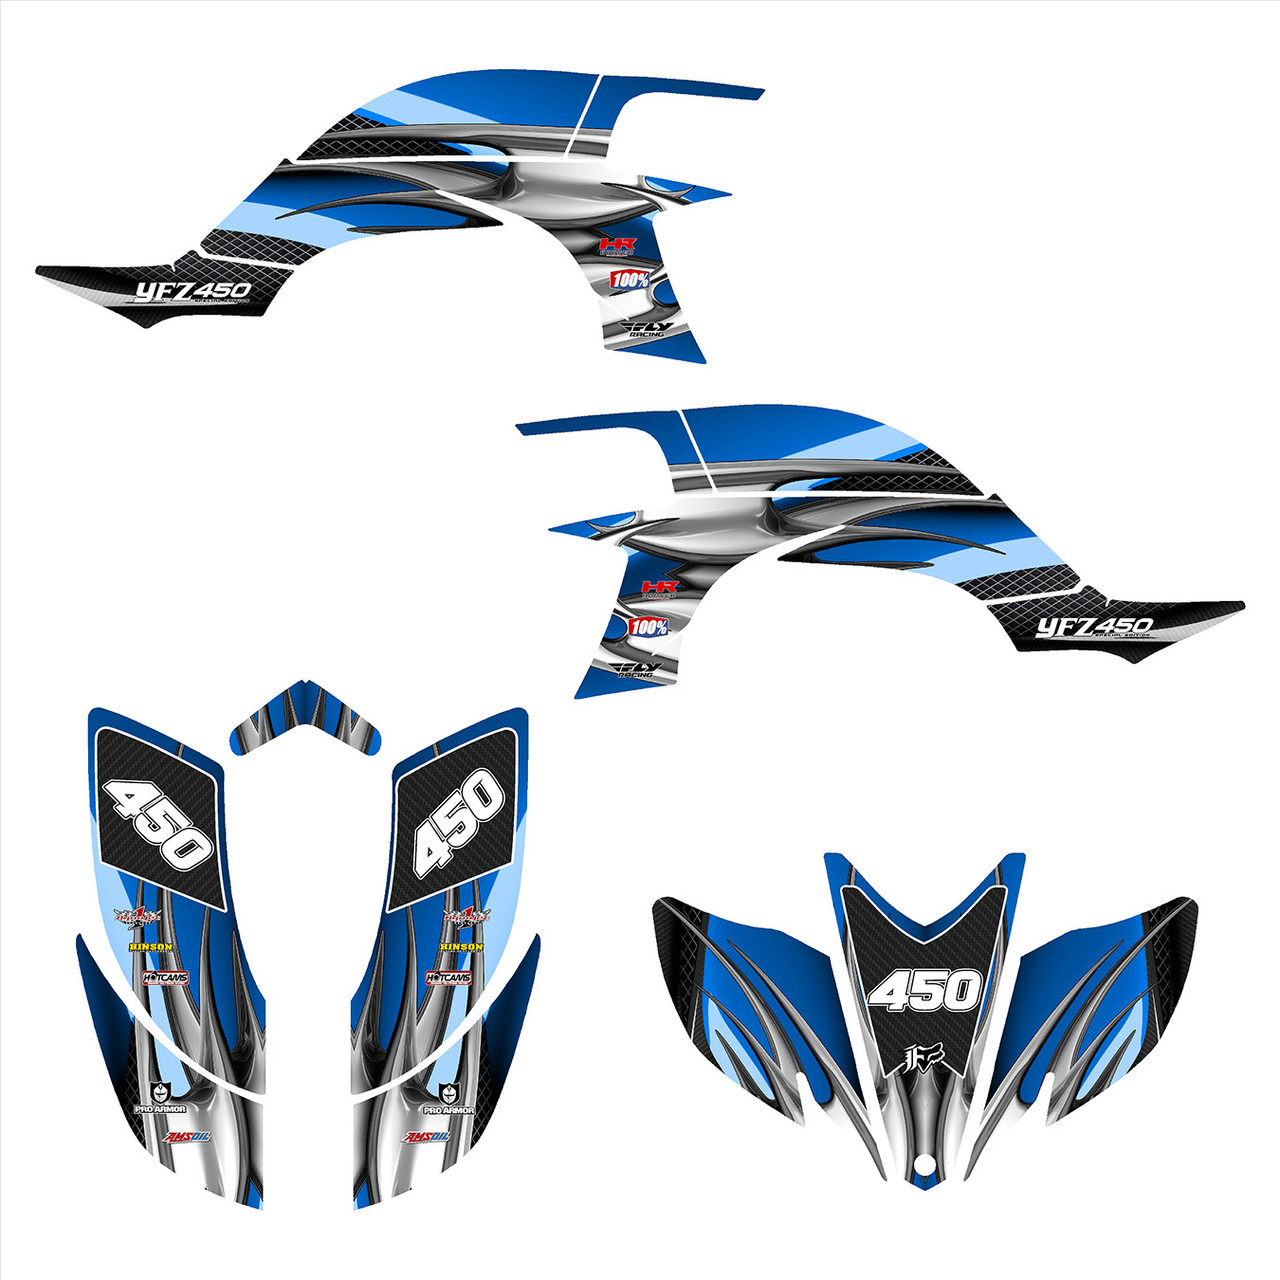 2005 Yamaha YFZ 450 graphics decal kit